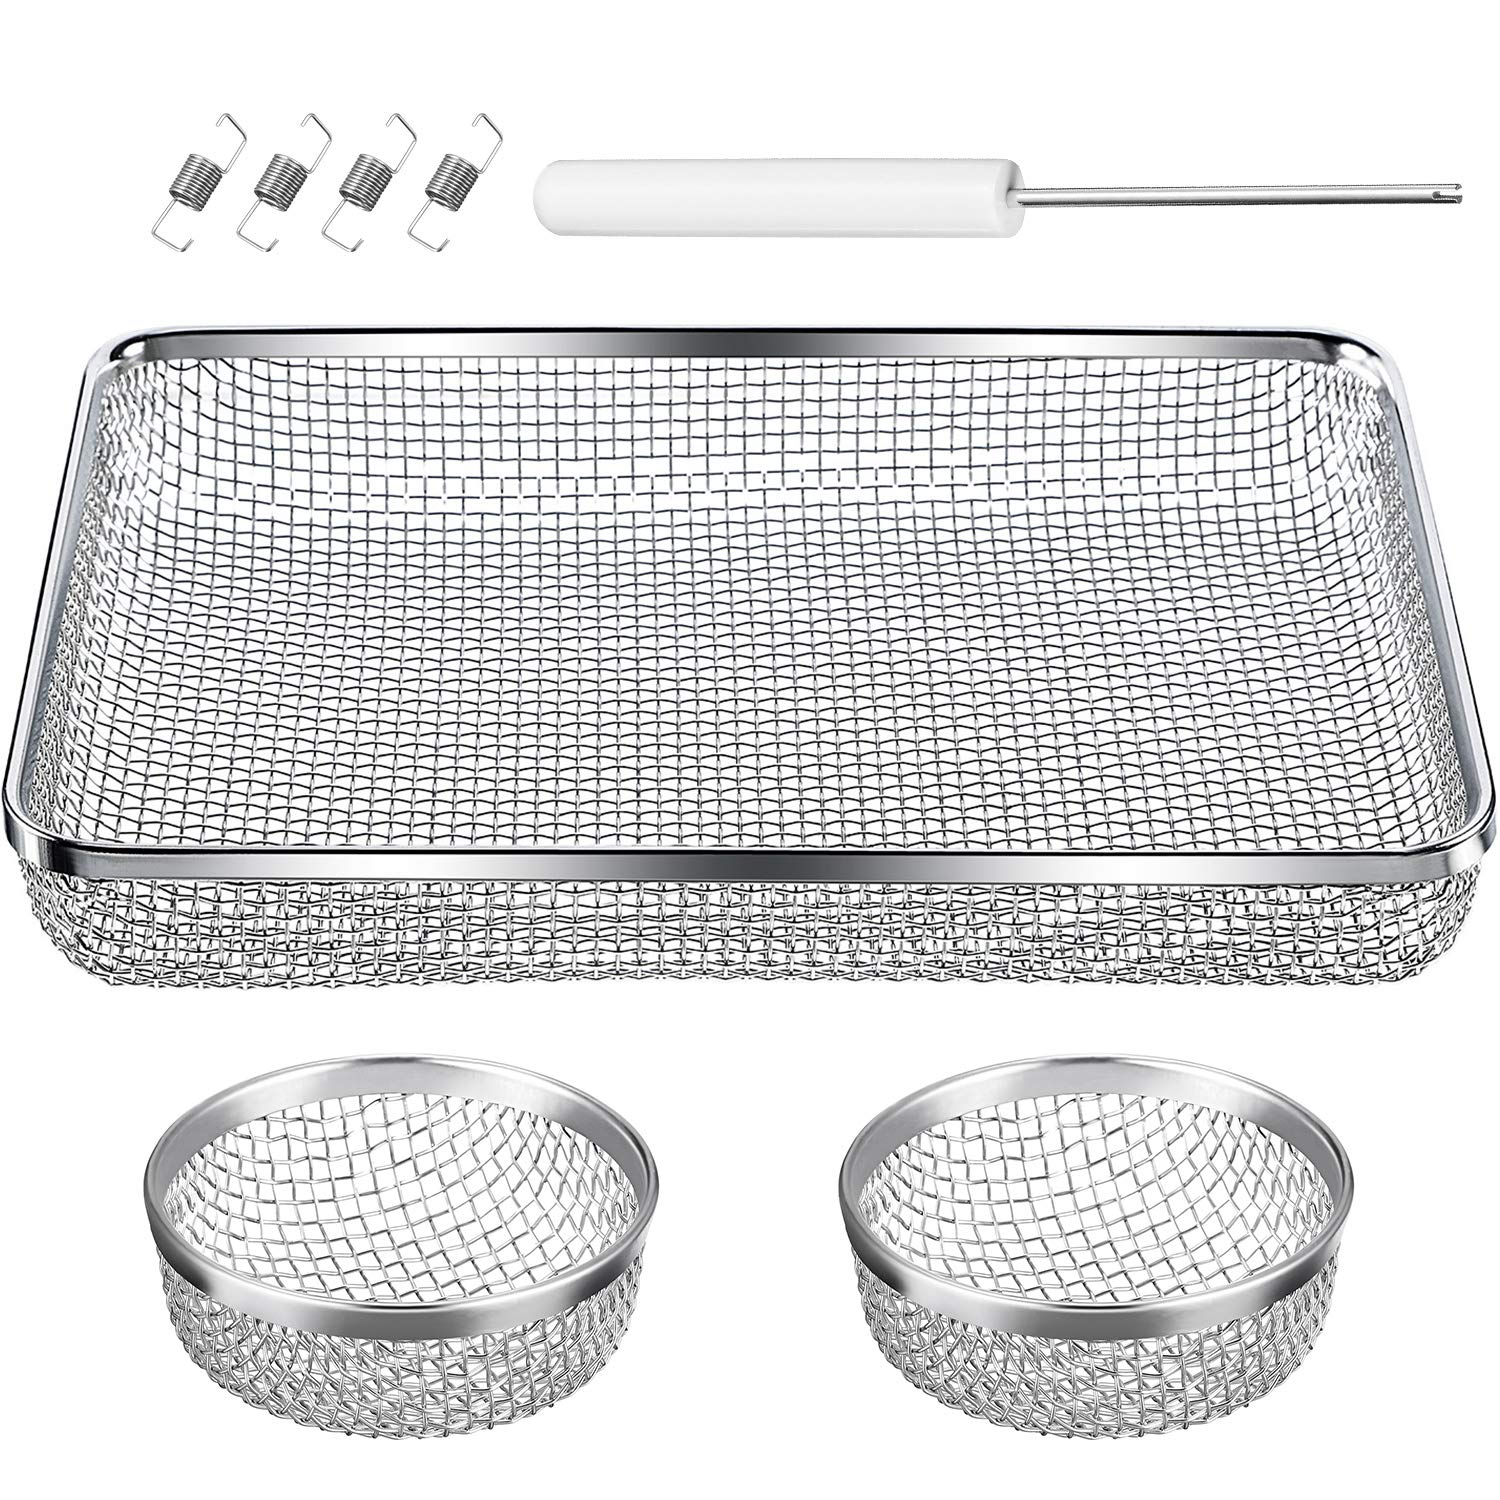 TOODOO 3 Pack Flying Insect Screen RV Furnace Vent Cover (2.8 Inch)(8.5 x 6 Inch) Stainless Steel Mesh with Installation Tool by TOODOO